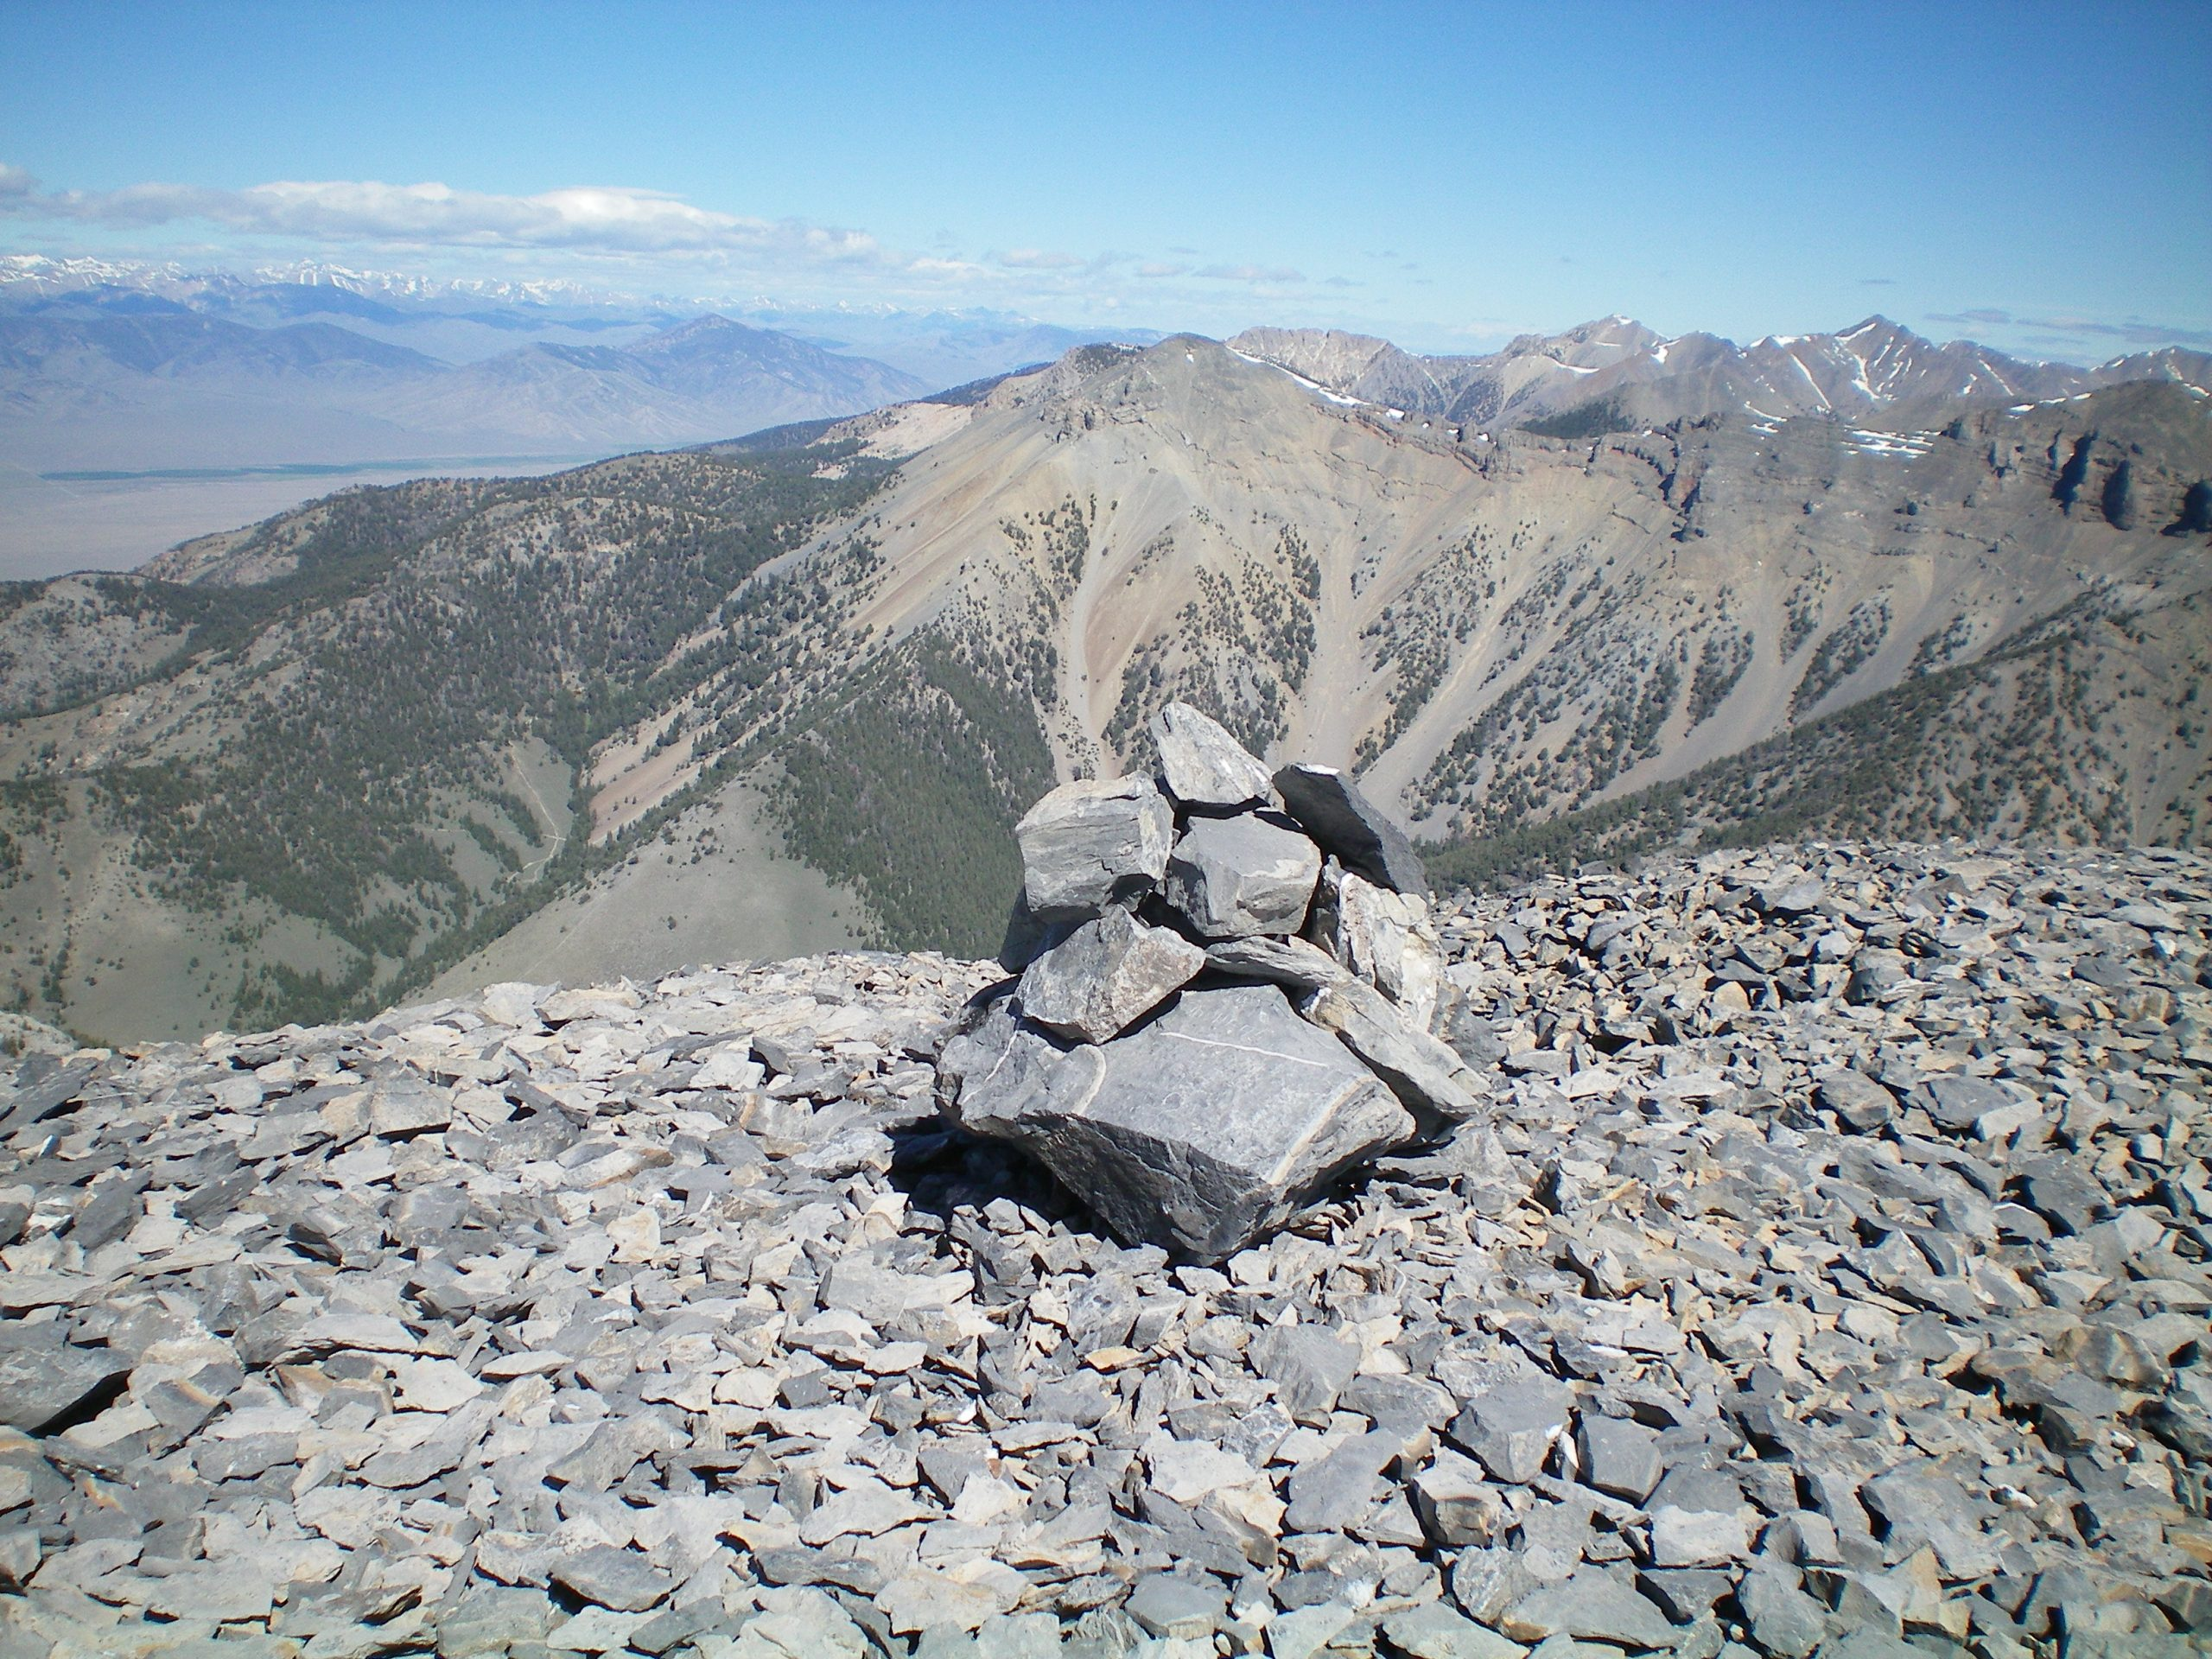 The newly-built summit cairn atop Tyler Peak with Peak 10604 in the background (dead-center). Livingston Douglas Photo